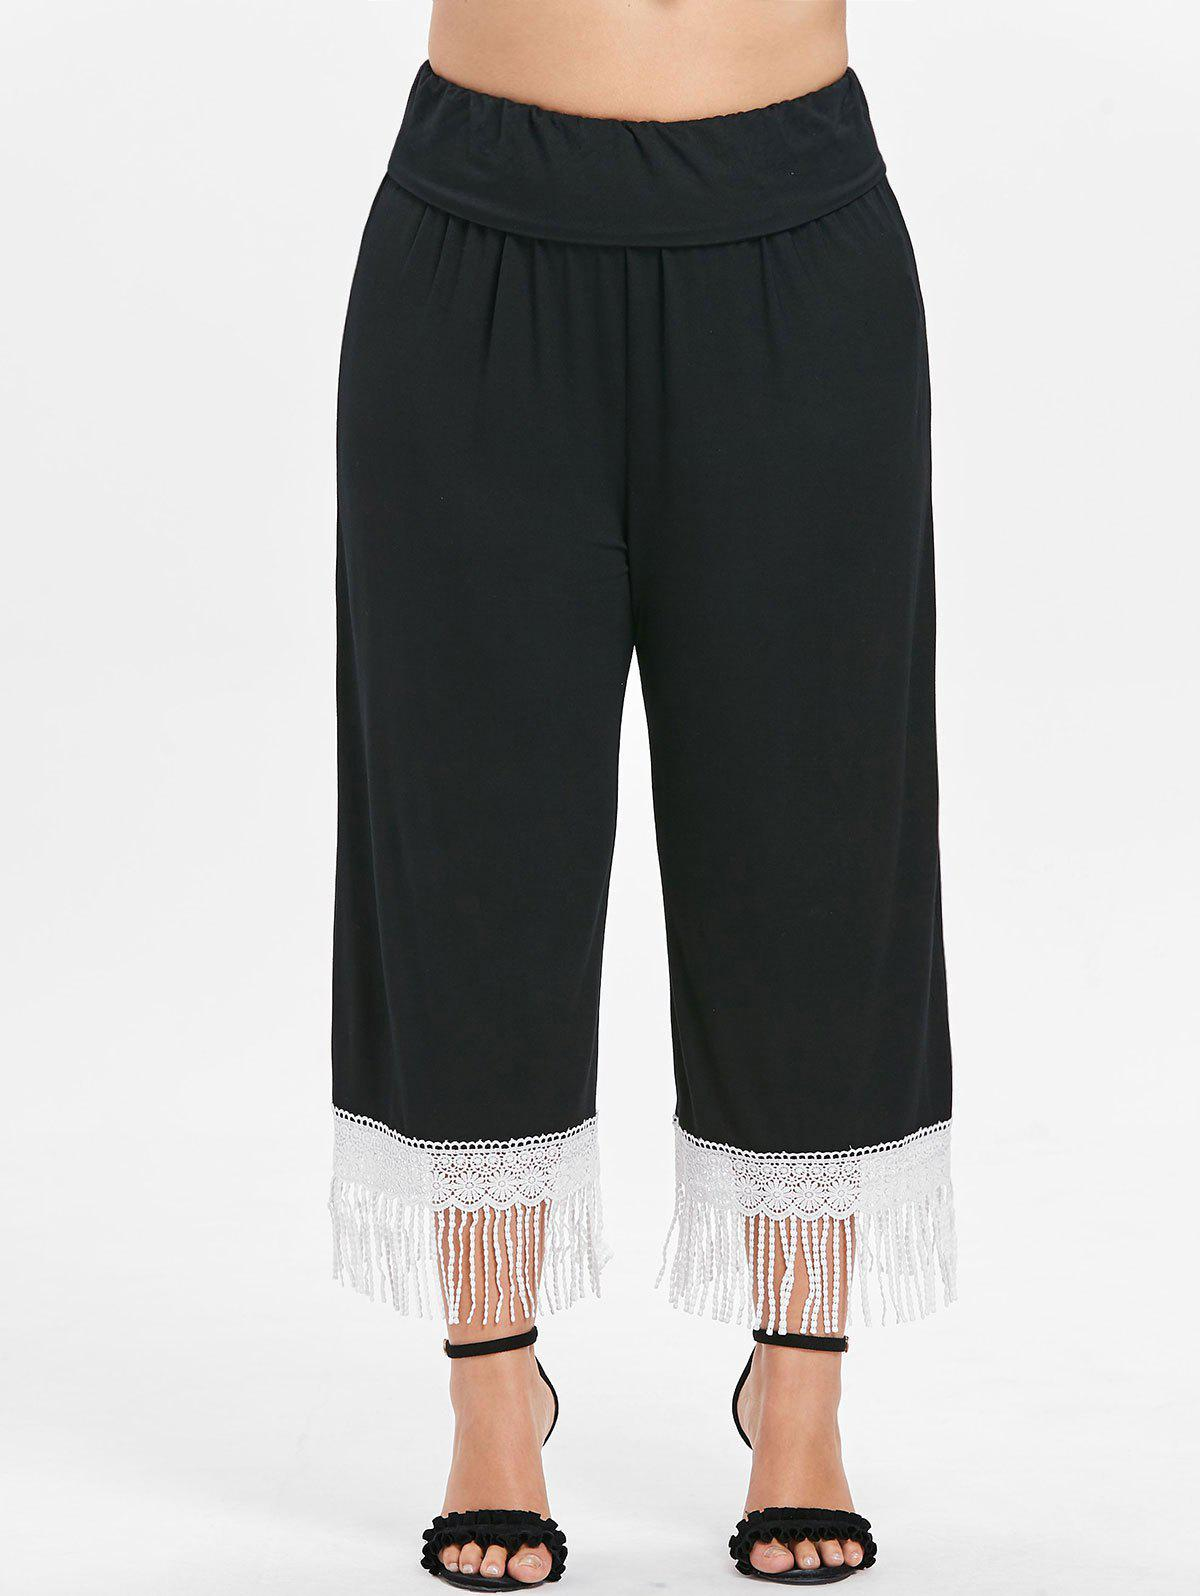 Best Plus Size Lace Trim Fringed Pants